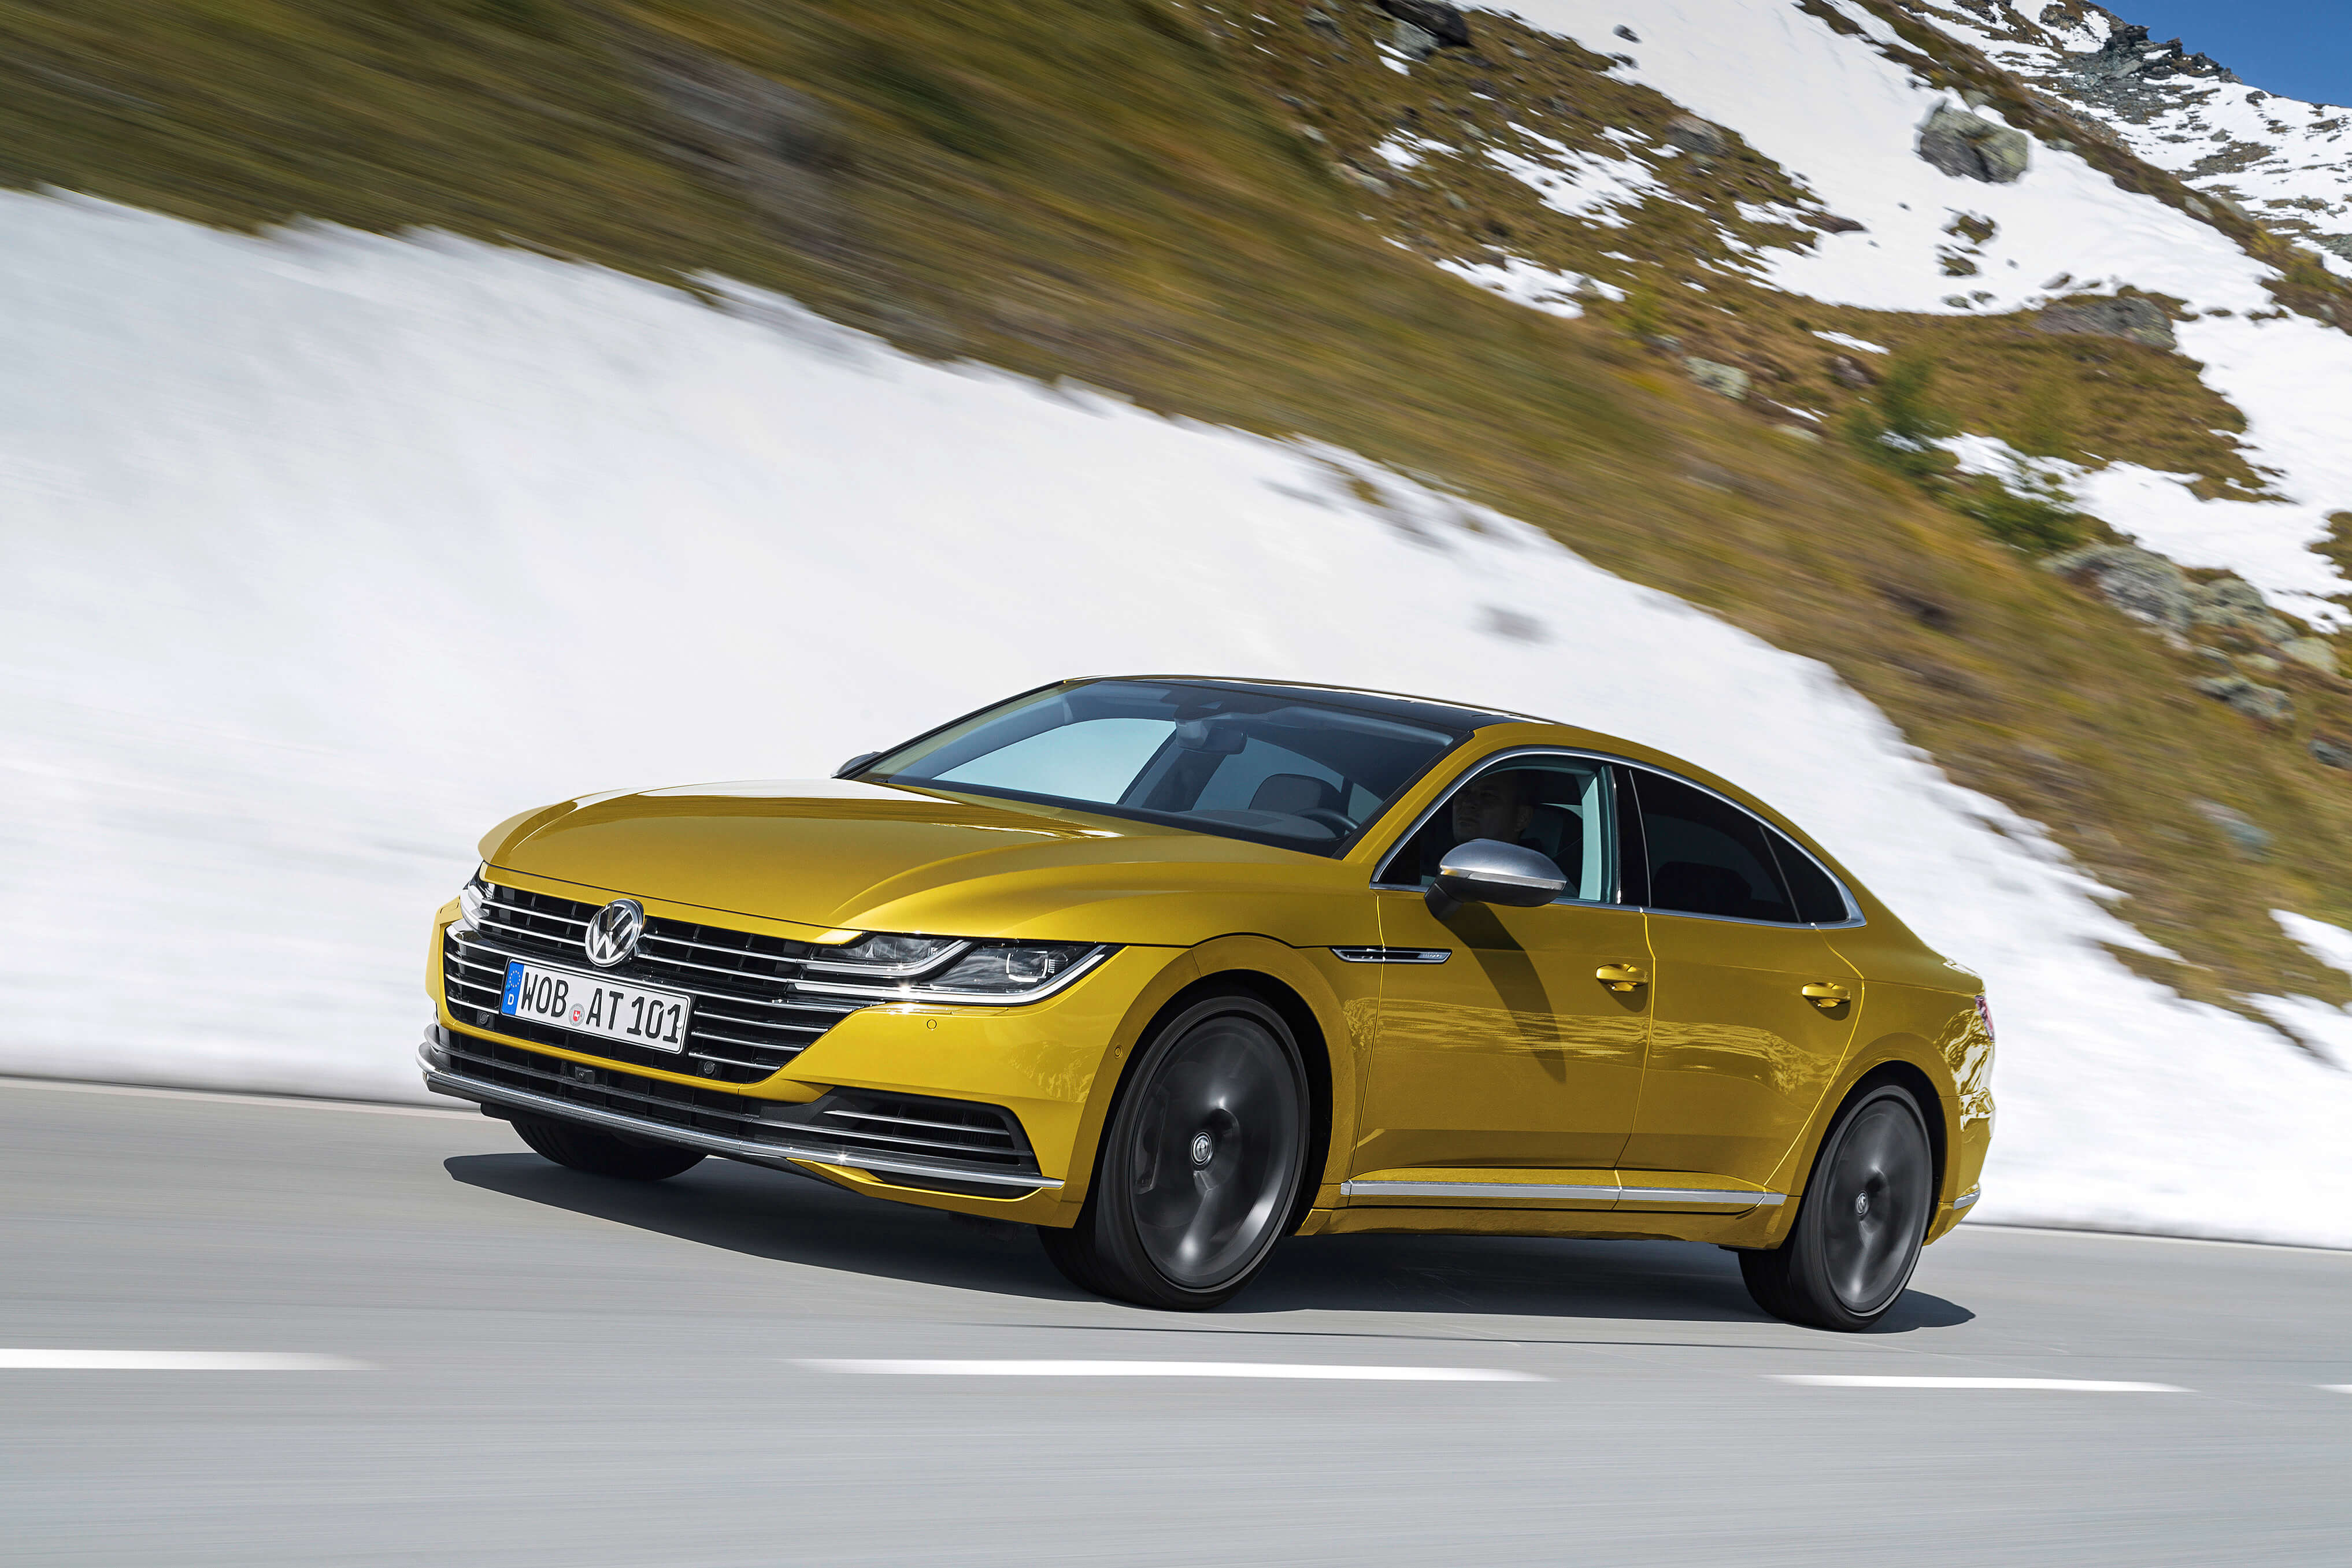 vw arteon 2 0 tdi leasing f r 69 euro brutto im monat. Black Bedroom Furniture Sets. Home Design Ideas